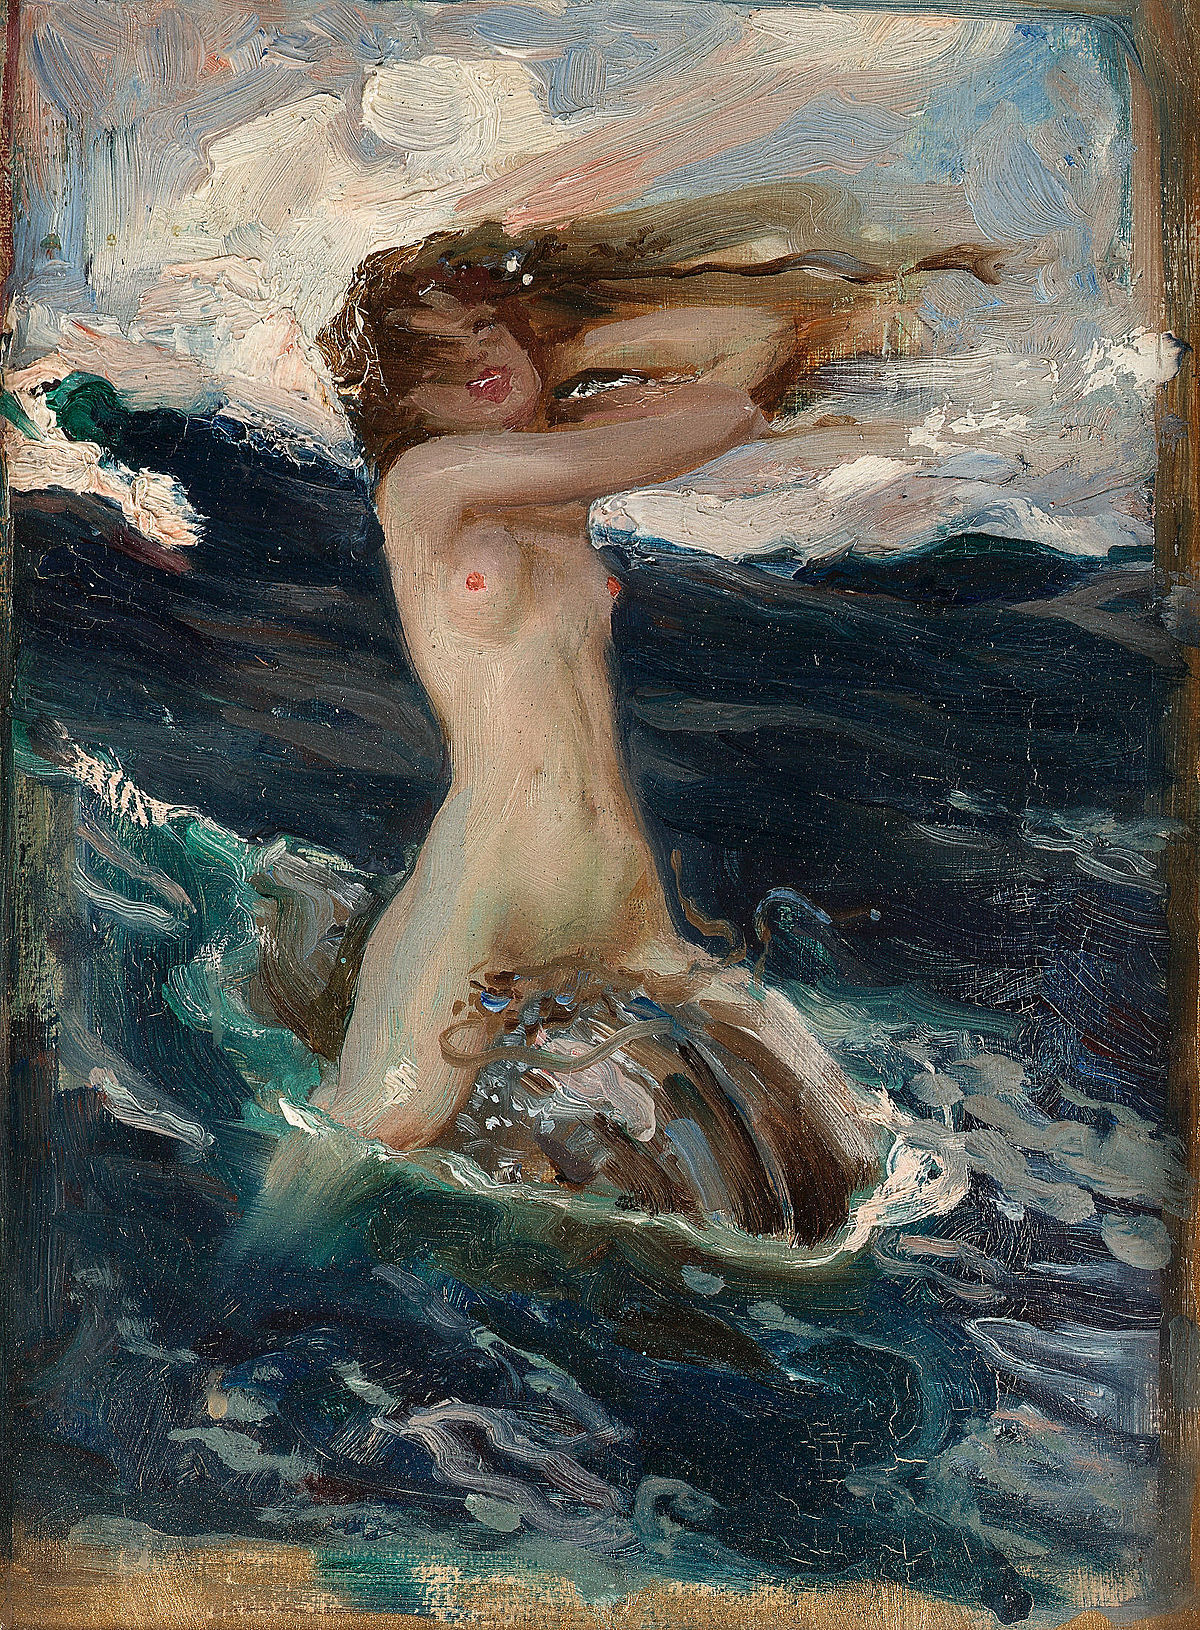 http://upload.wikimedia.org/wikipedia/commons/thumb/f/f8/Herbert_James_Draper%2C_Study_for_the_foam_sprite.jpg/1200px-Herbert_James_Draper%2C_Study_for_the_foam_sprite.jpg